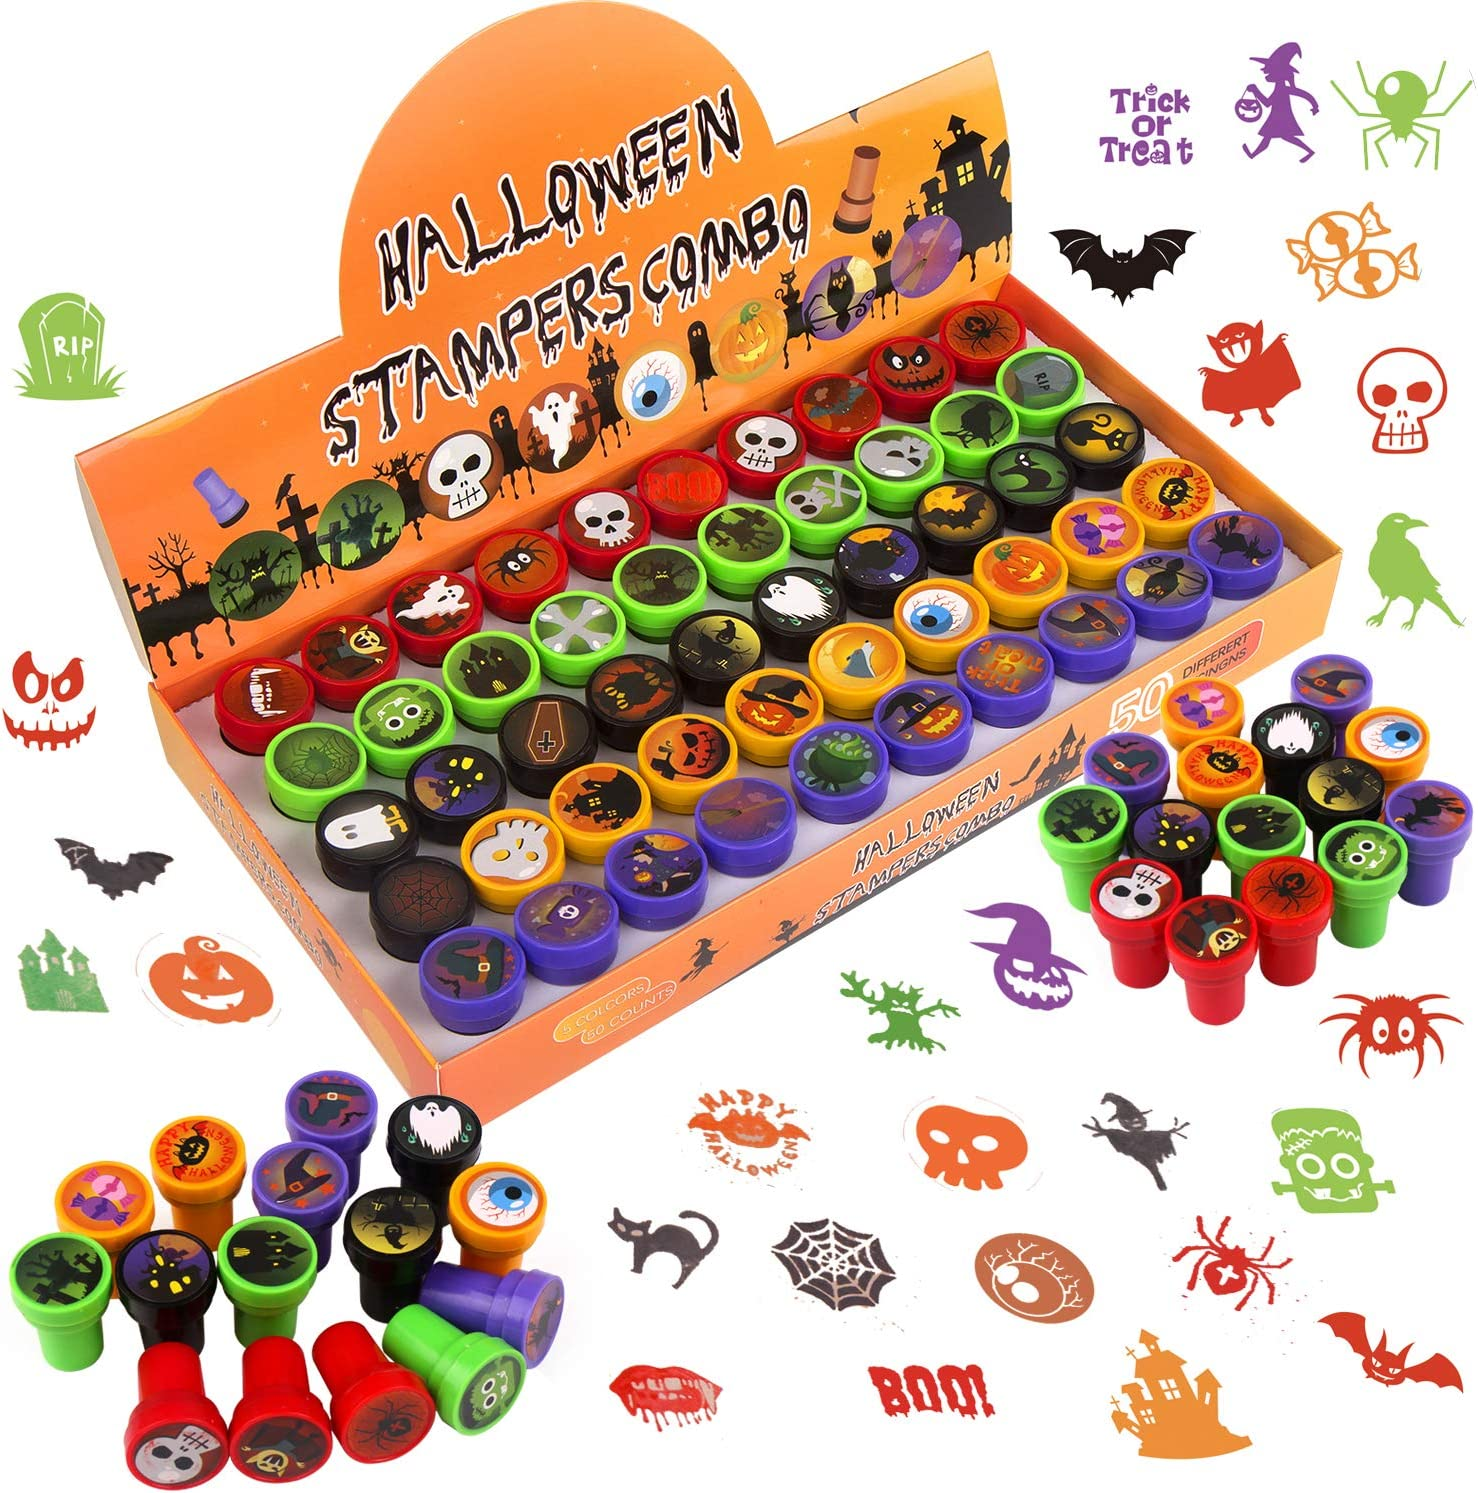 CCINEE 50pcs Halloween Assorted Stamps Cute Cartoon Stamps for Kids Halloween Party Favors Trick or Treat Goodies Bags Filler